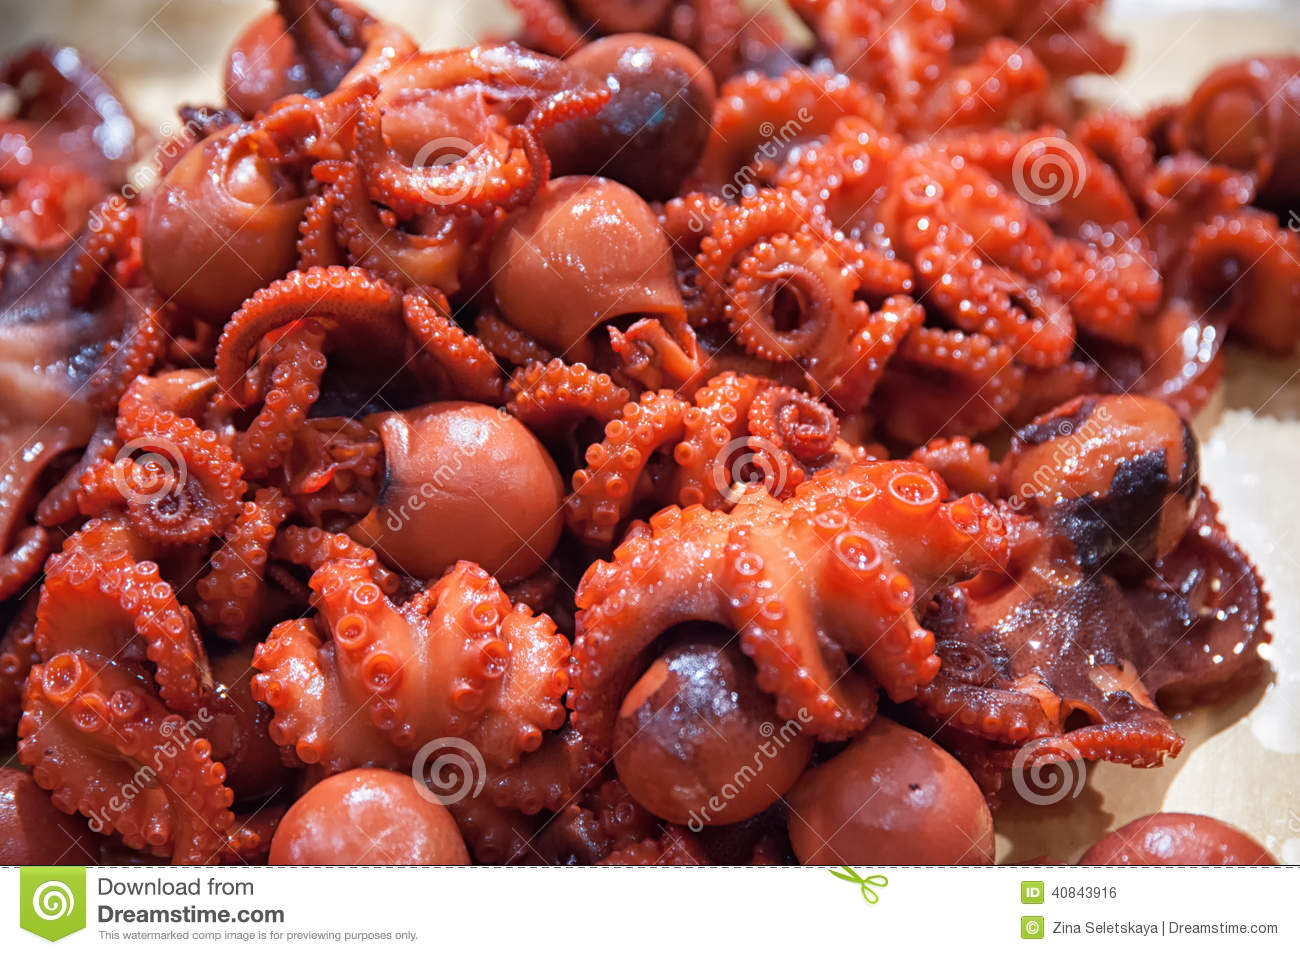 Baby Octopus For Sale Stock Photo - Image: 40843916